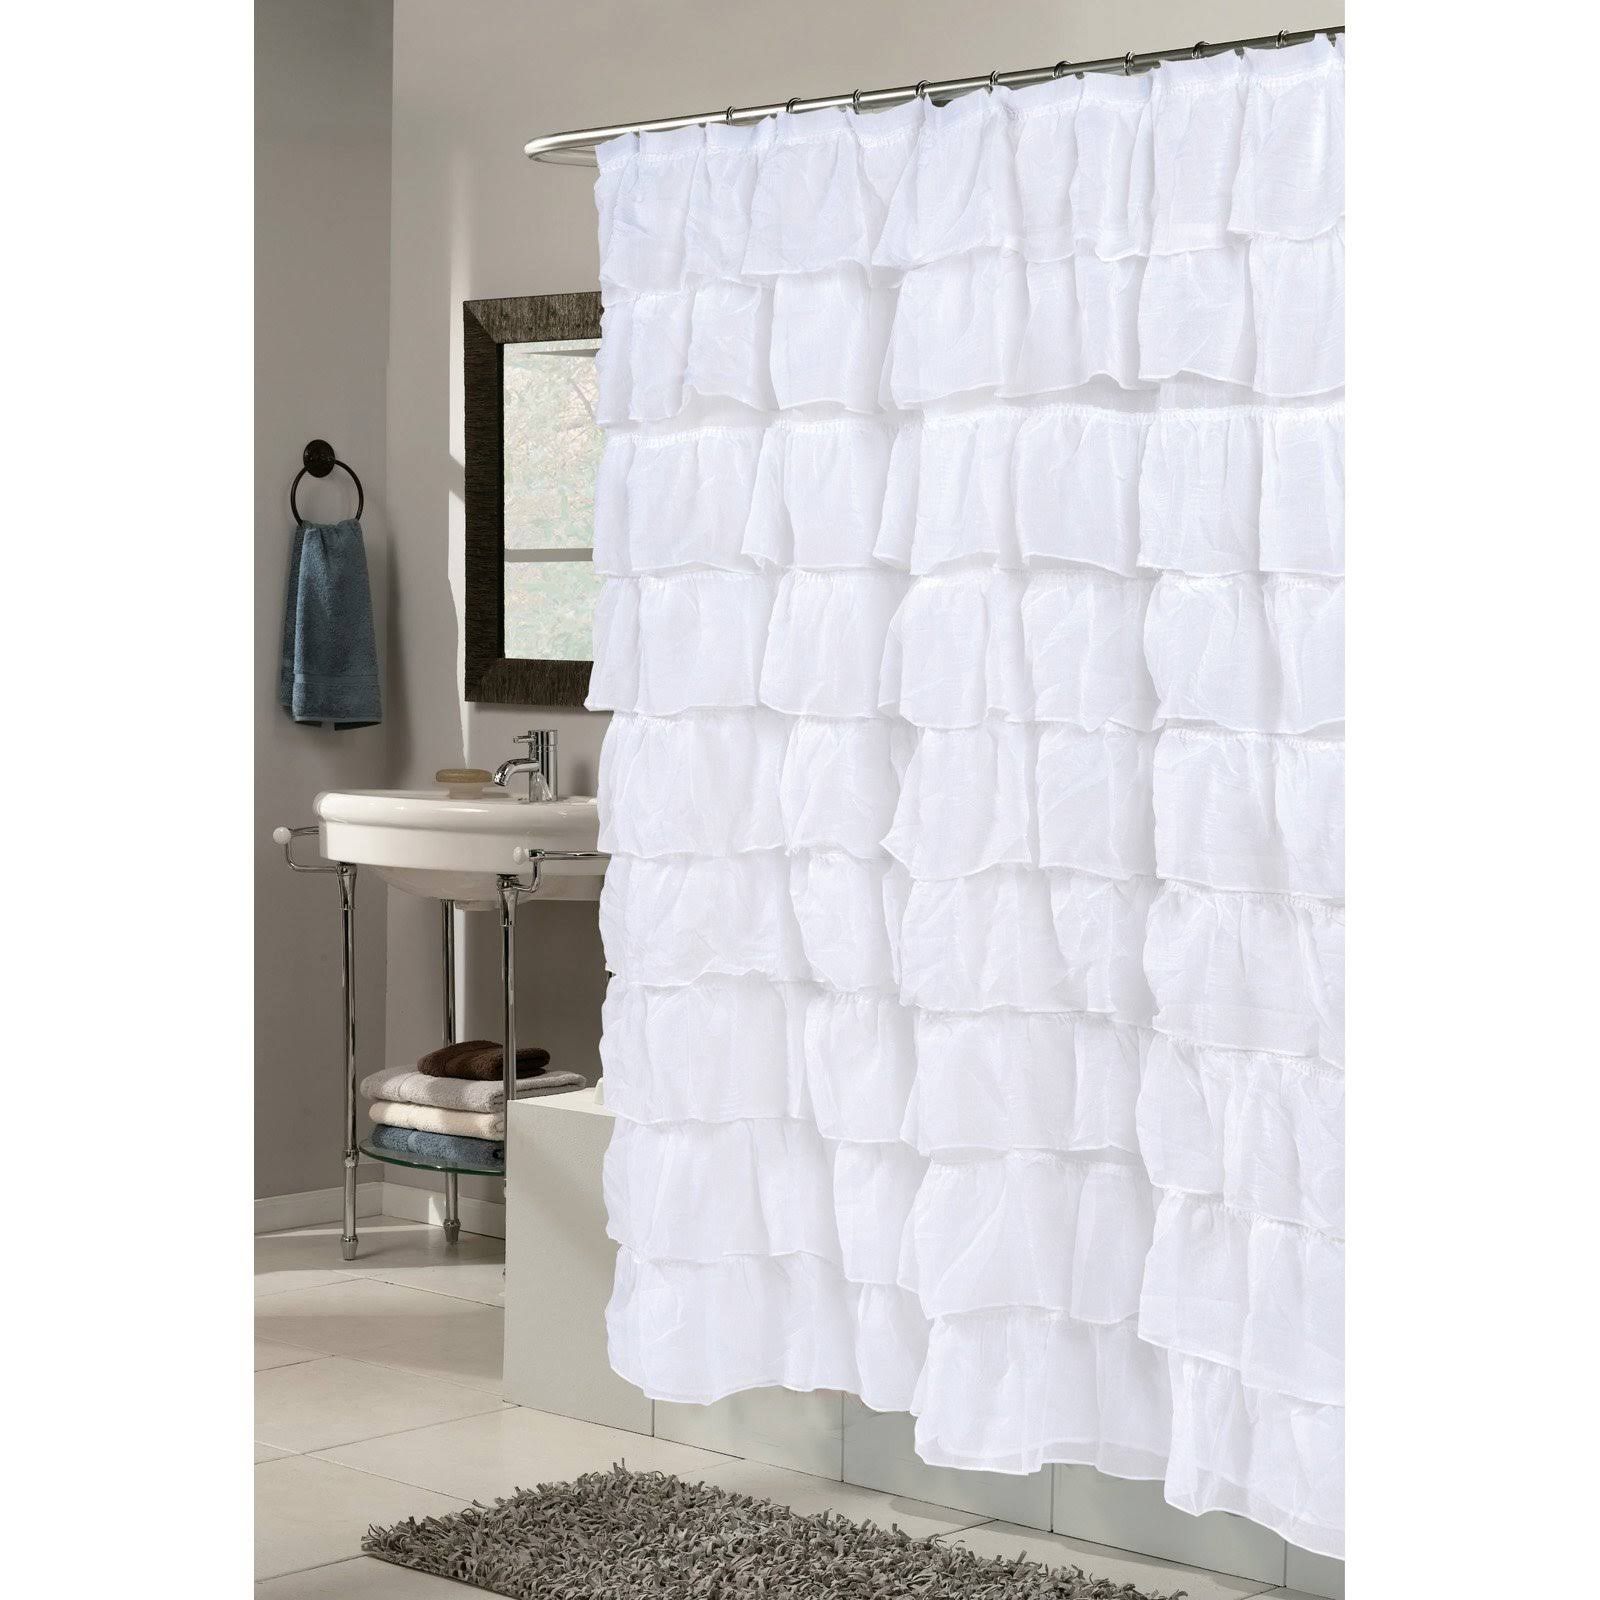 Carnation Home Fashions Carmen Polyester Shower Curtain White